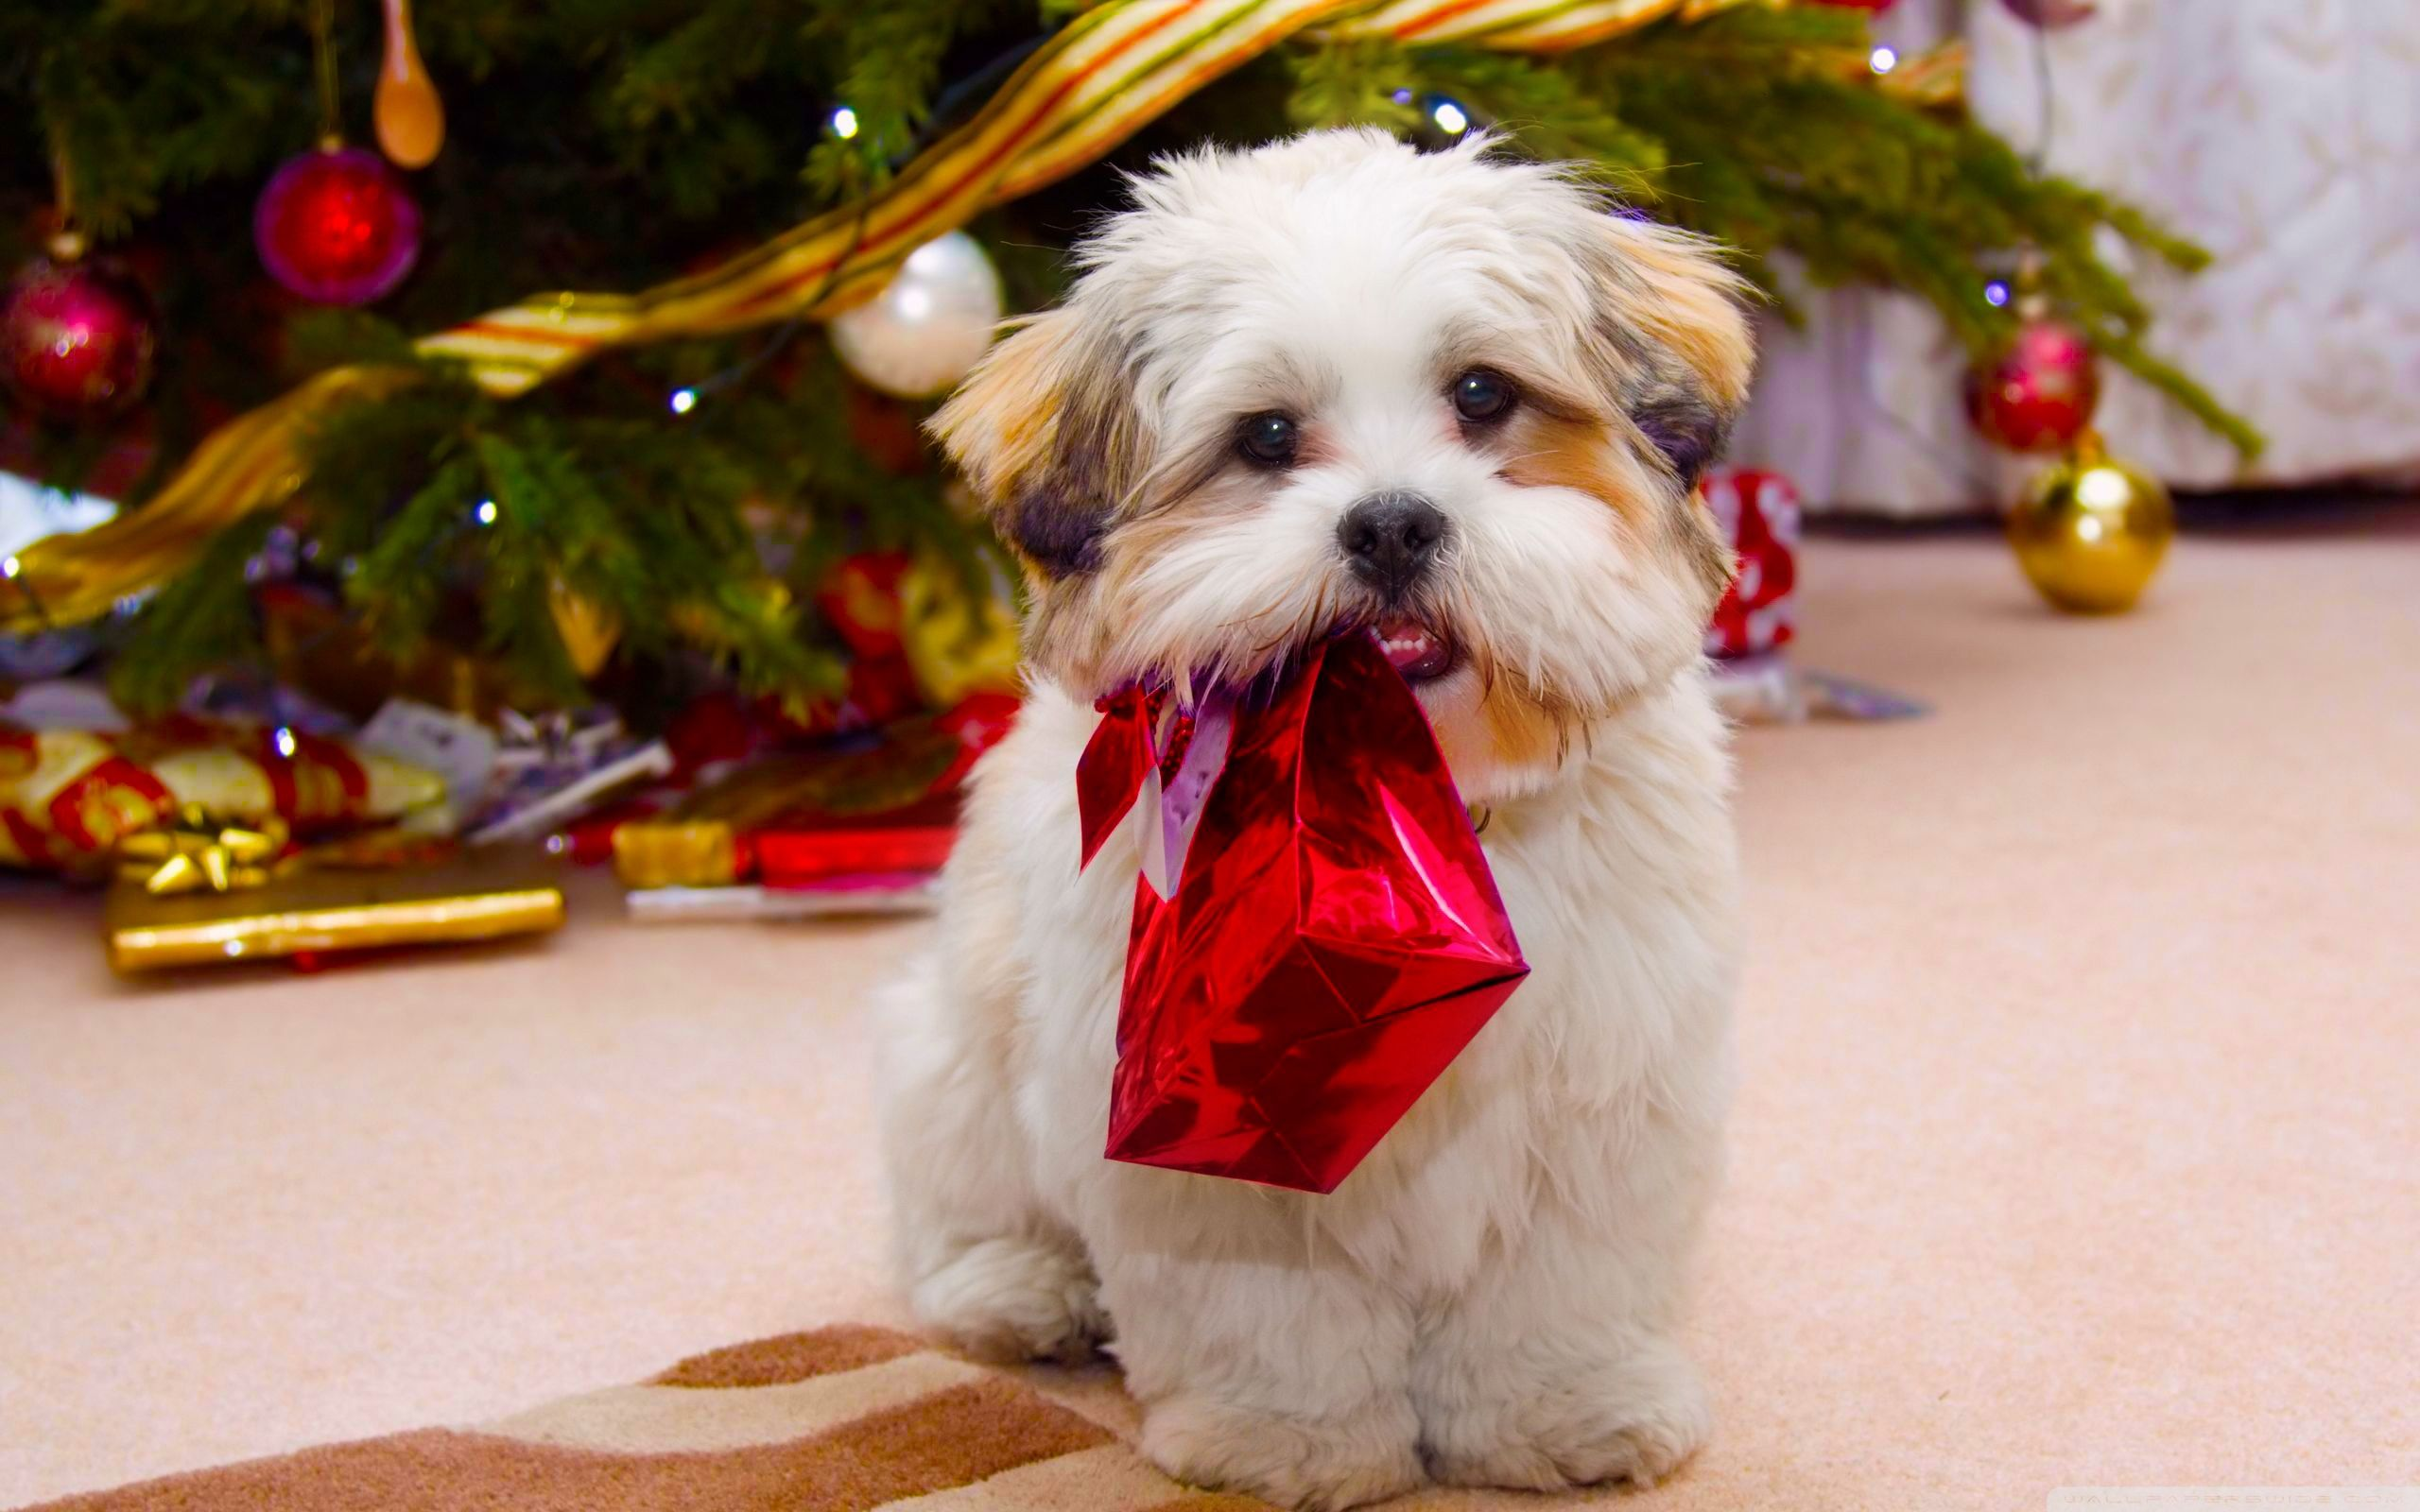 Hd Christmas Wallpaper High Definition Christmas Wallpapers Christmas Animals Christmas Dog Christmas Puppy